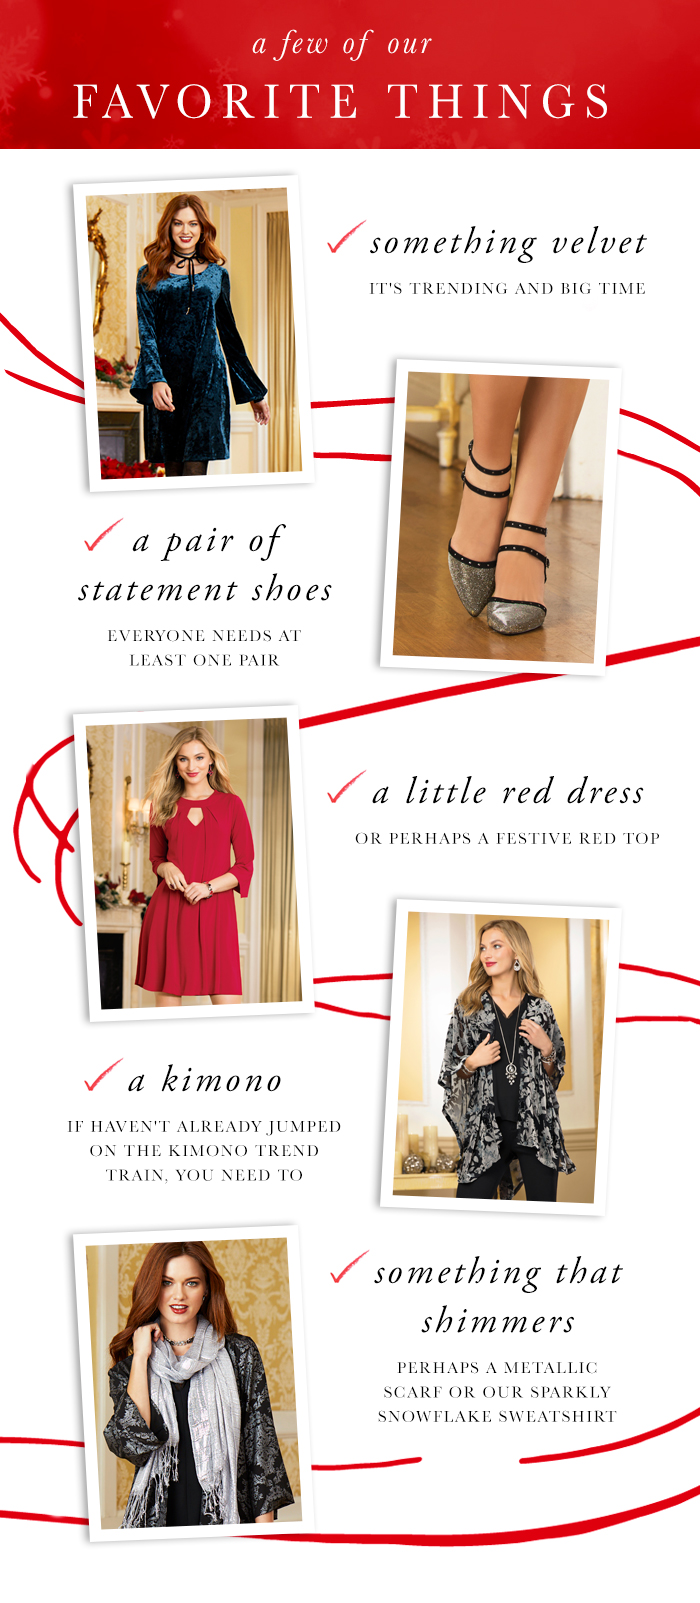 A few of our favorite things; Something Velvet: It's Trending and bigtime. A Pair of Statement Shoes: Everyone needs at least one pair. A little Red Dress: or perhaps a festive red top. A Kimono: if you haven't already jumped on the kimono trend train, you need to. Something that shimmers: perhaps a metallic scarf or our sparkly snowflake sweatshirt.